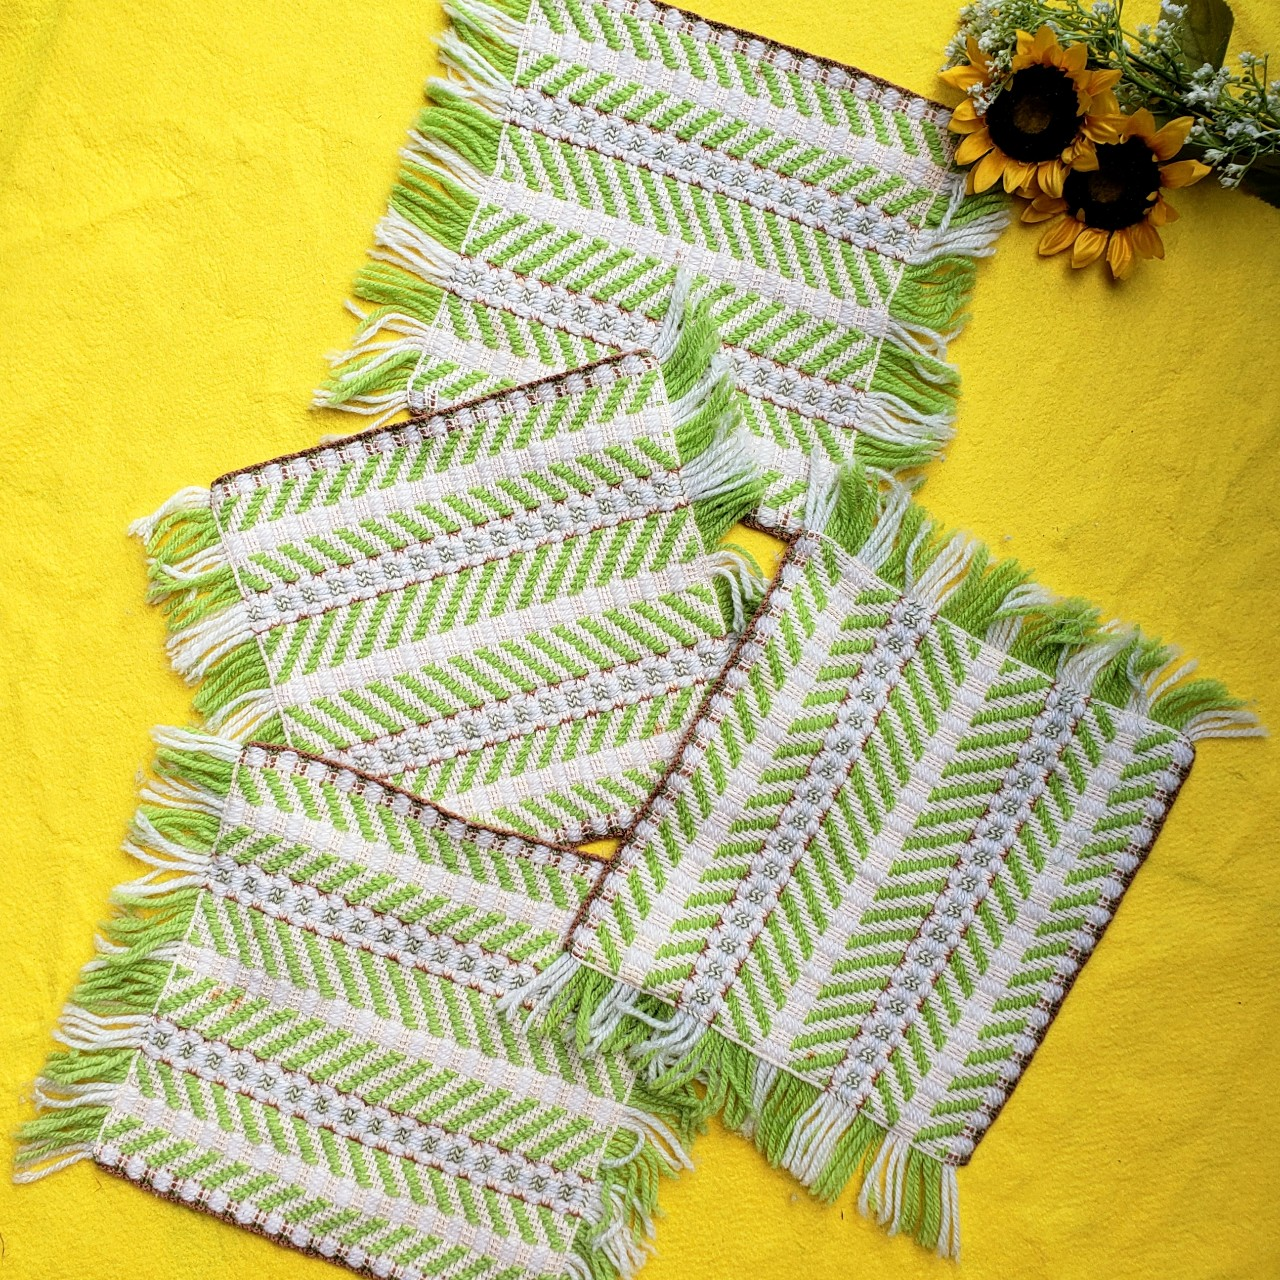 Product Image 1 - Vintage 70s Woven Yarn Placemats